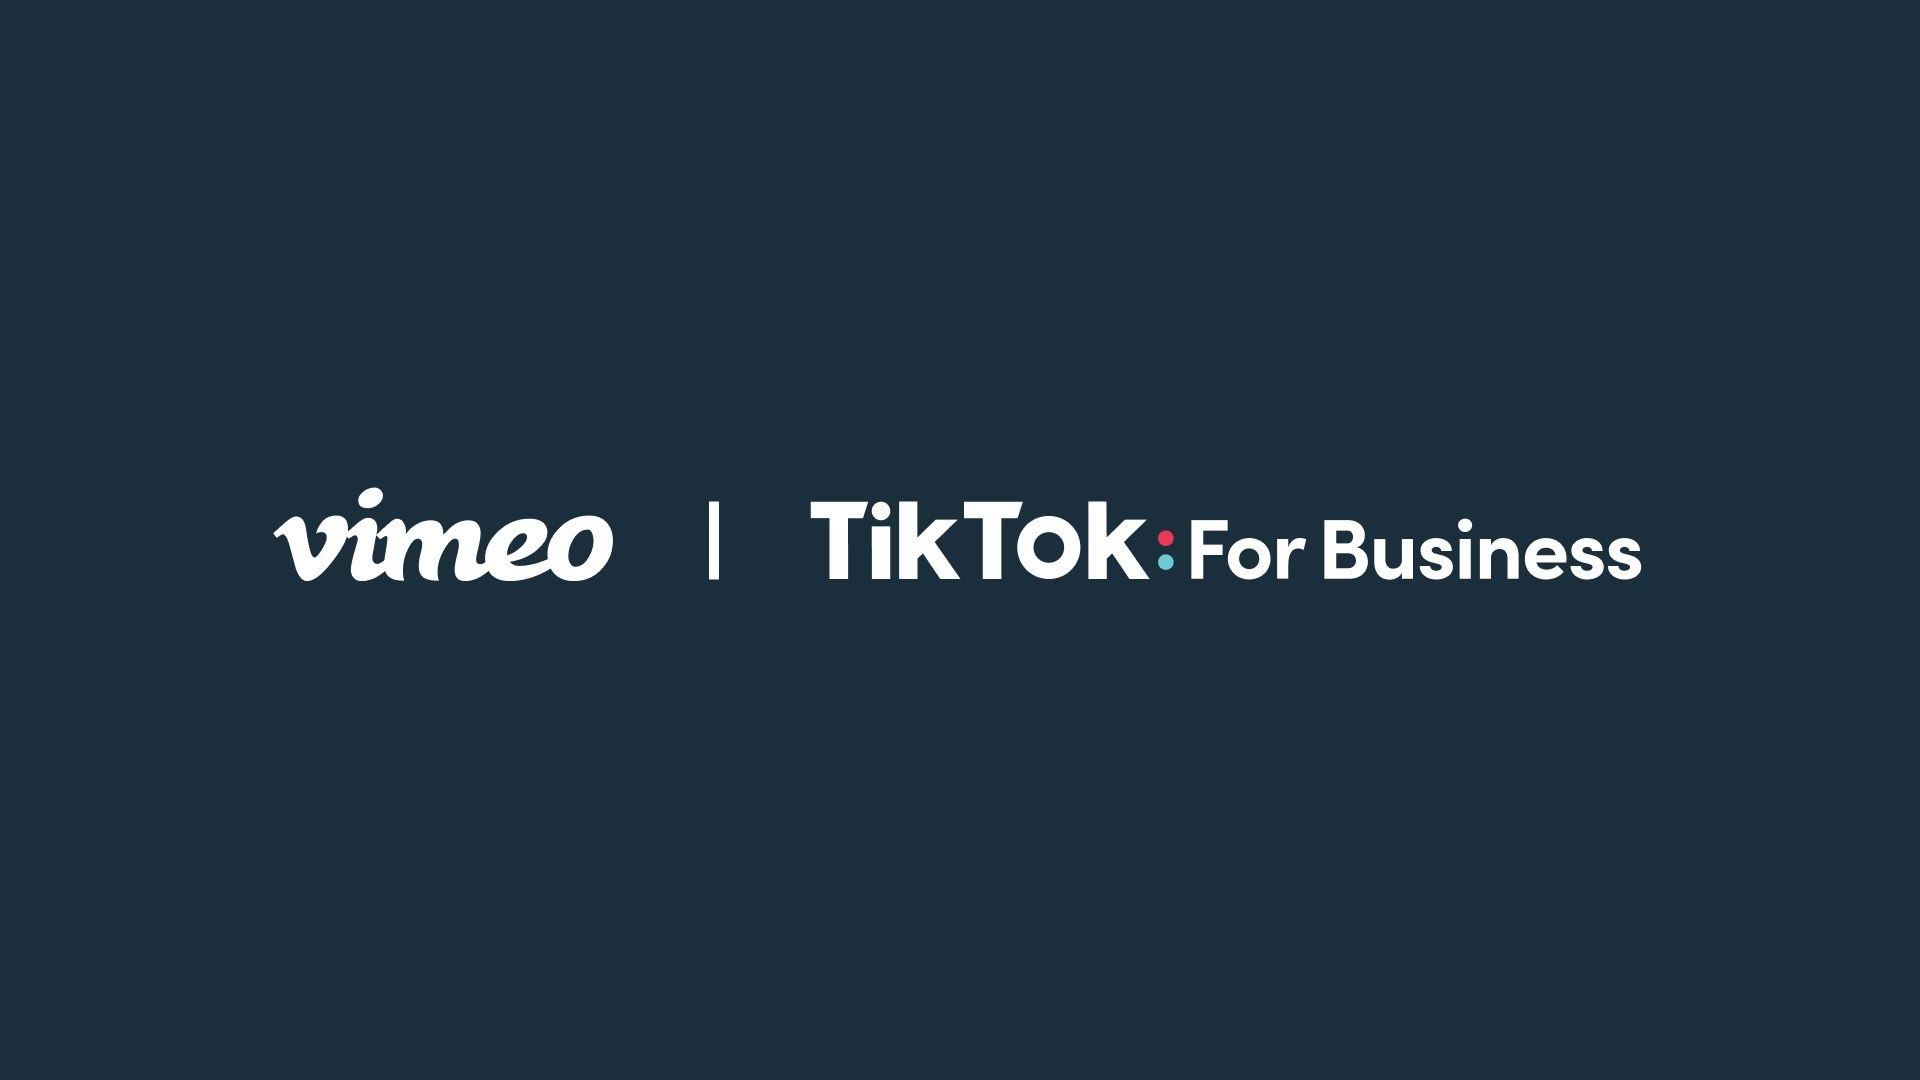 Vimeo and TikTok Partner to Drive Small Business Success With Video Ads